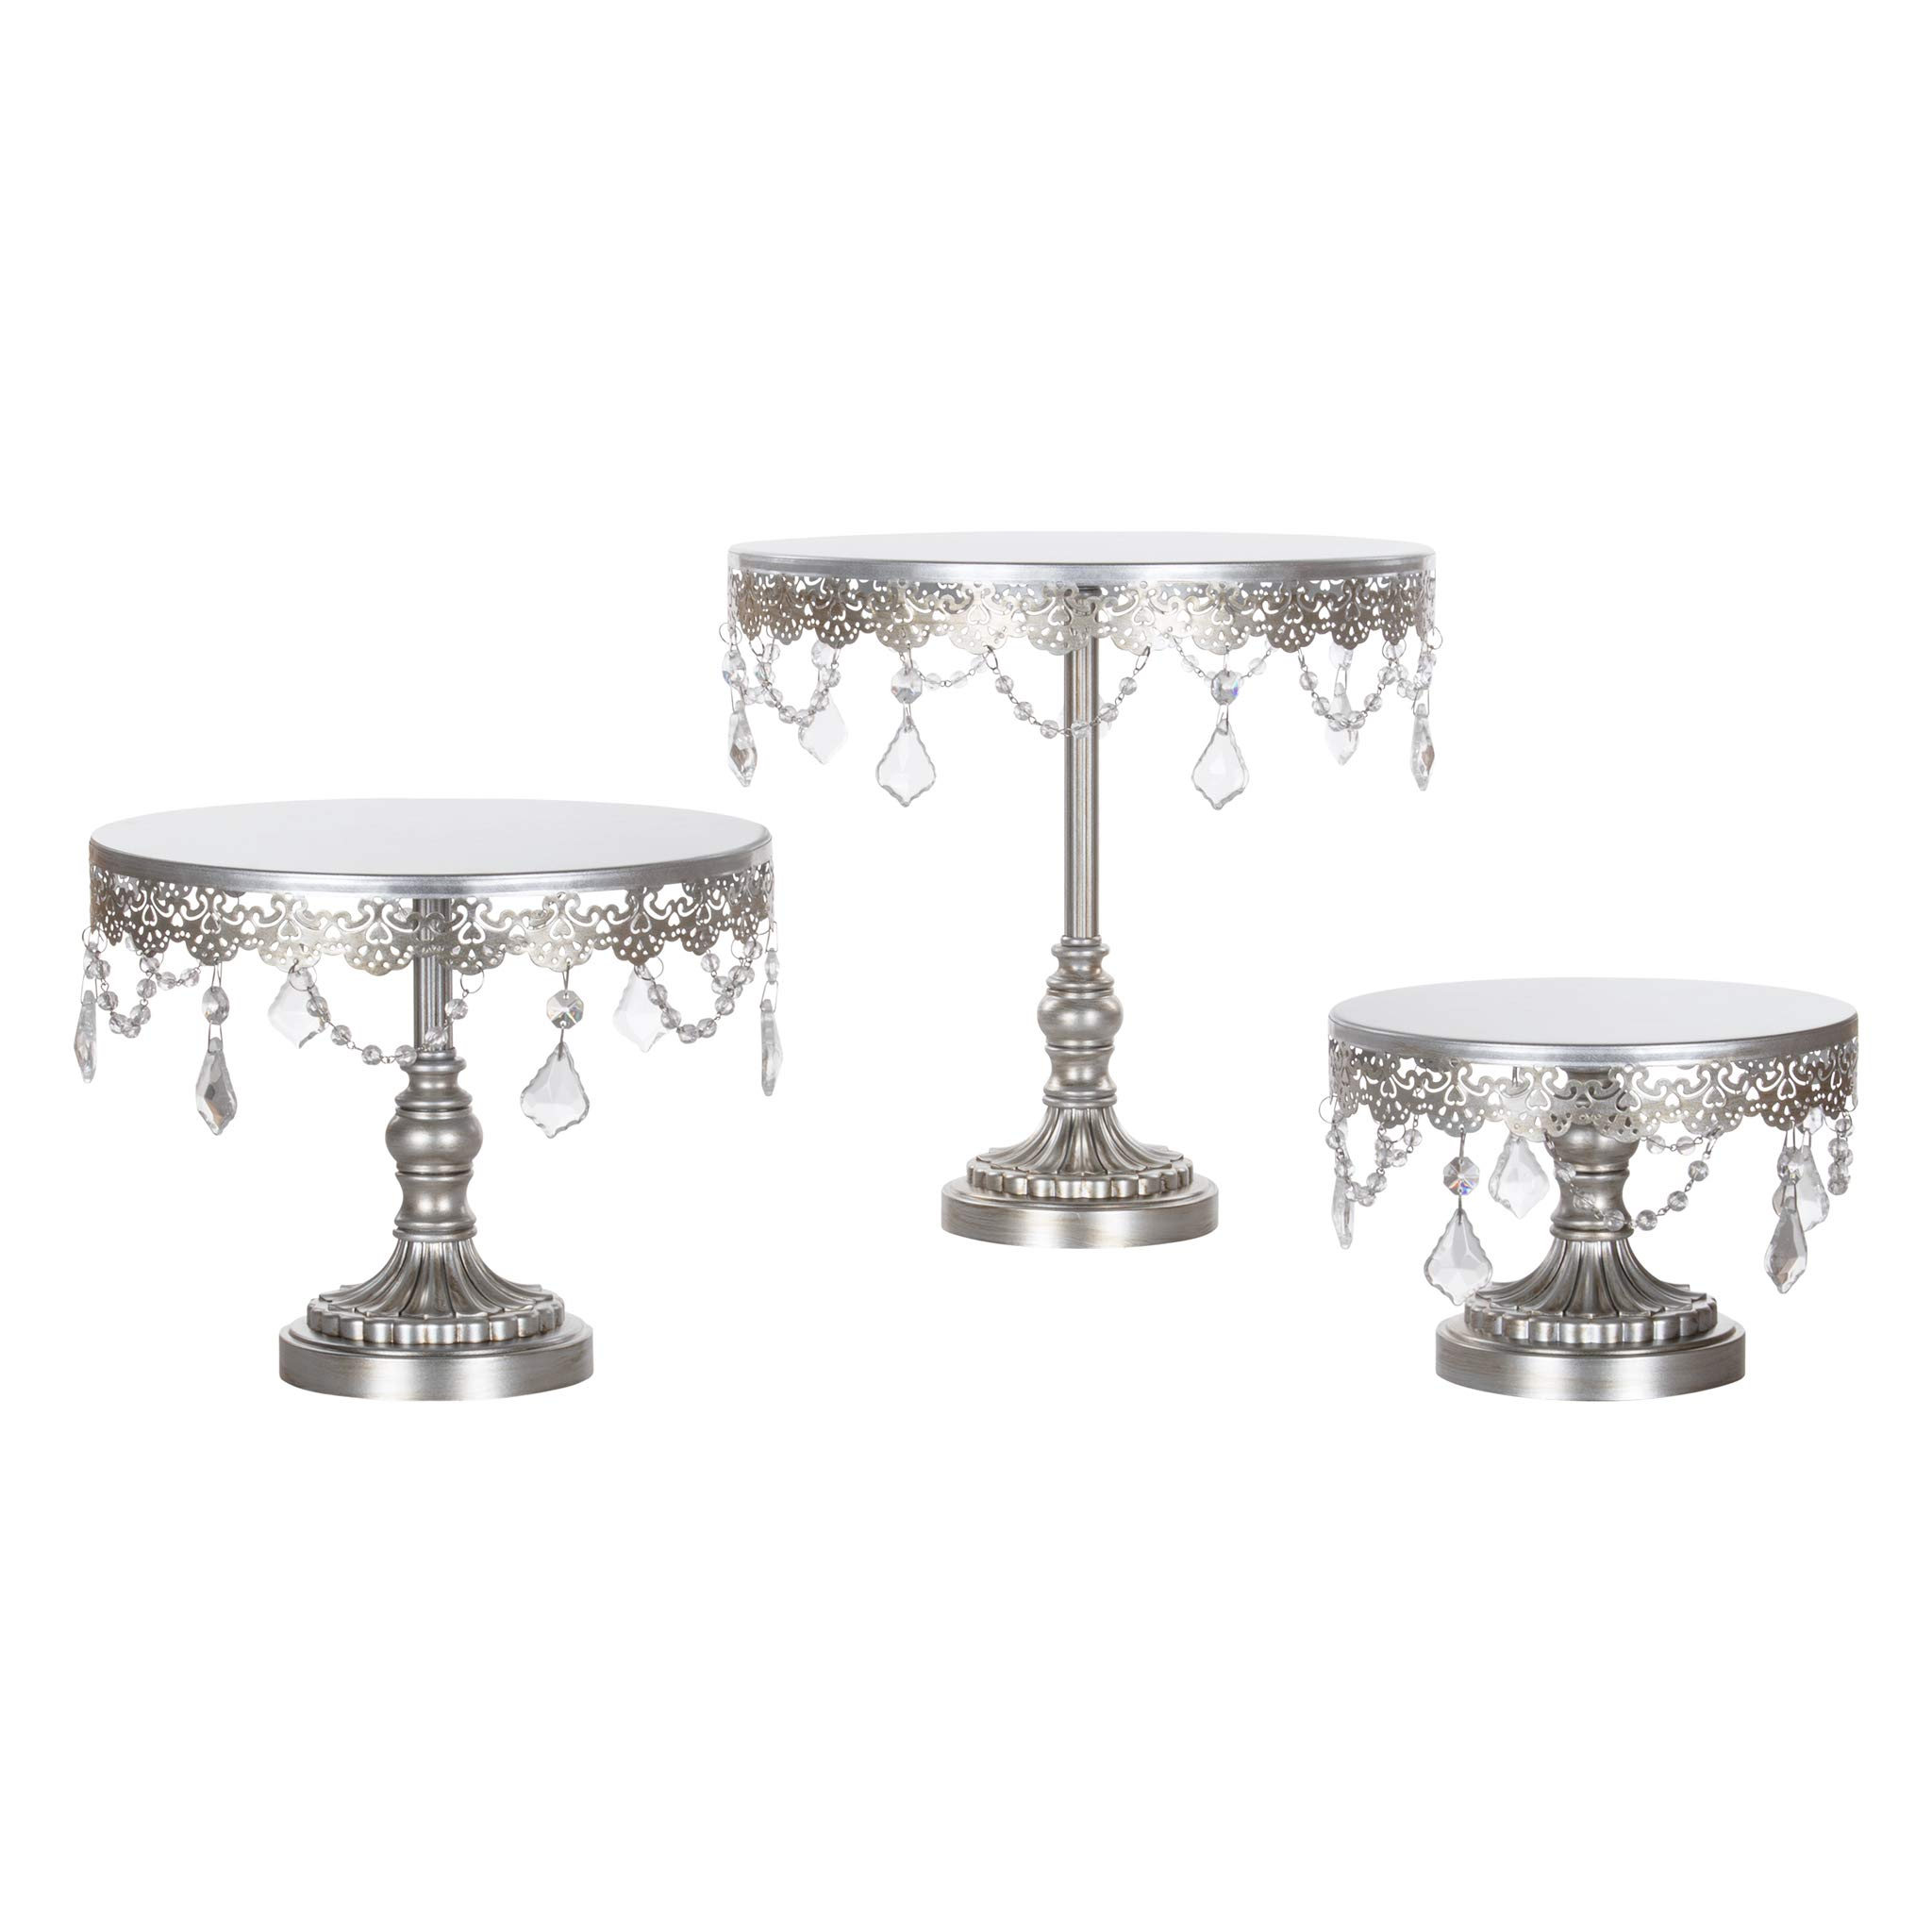 Sophia Cake Stand Set of 3, Round Metal Plate Dessert Cupcake Pedestal Wedding Party Display with Glass Crystals (Silver)